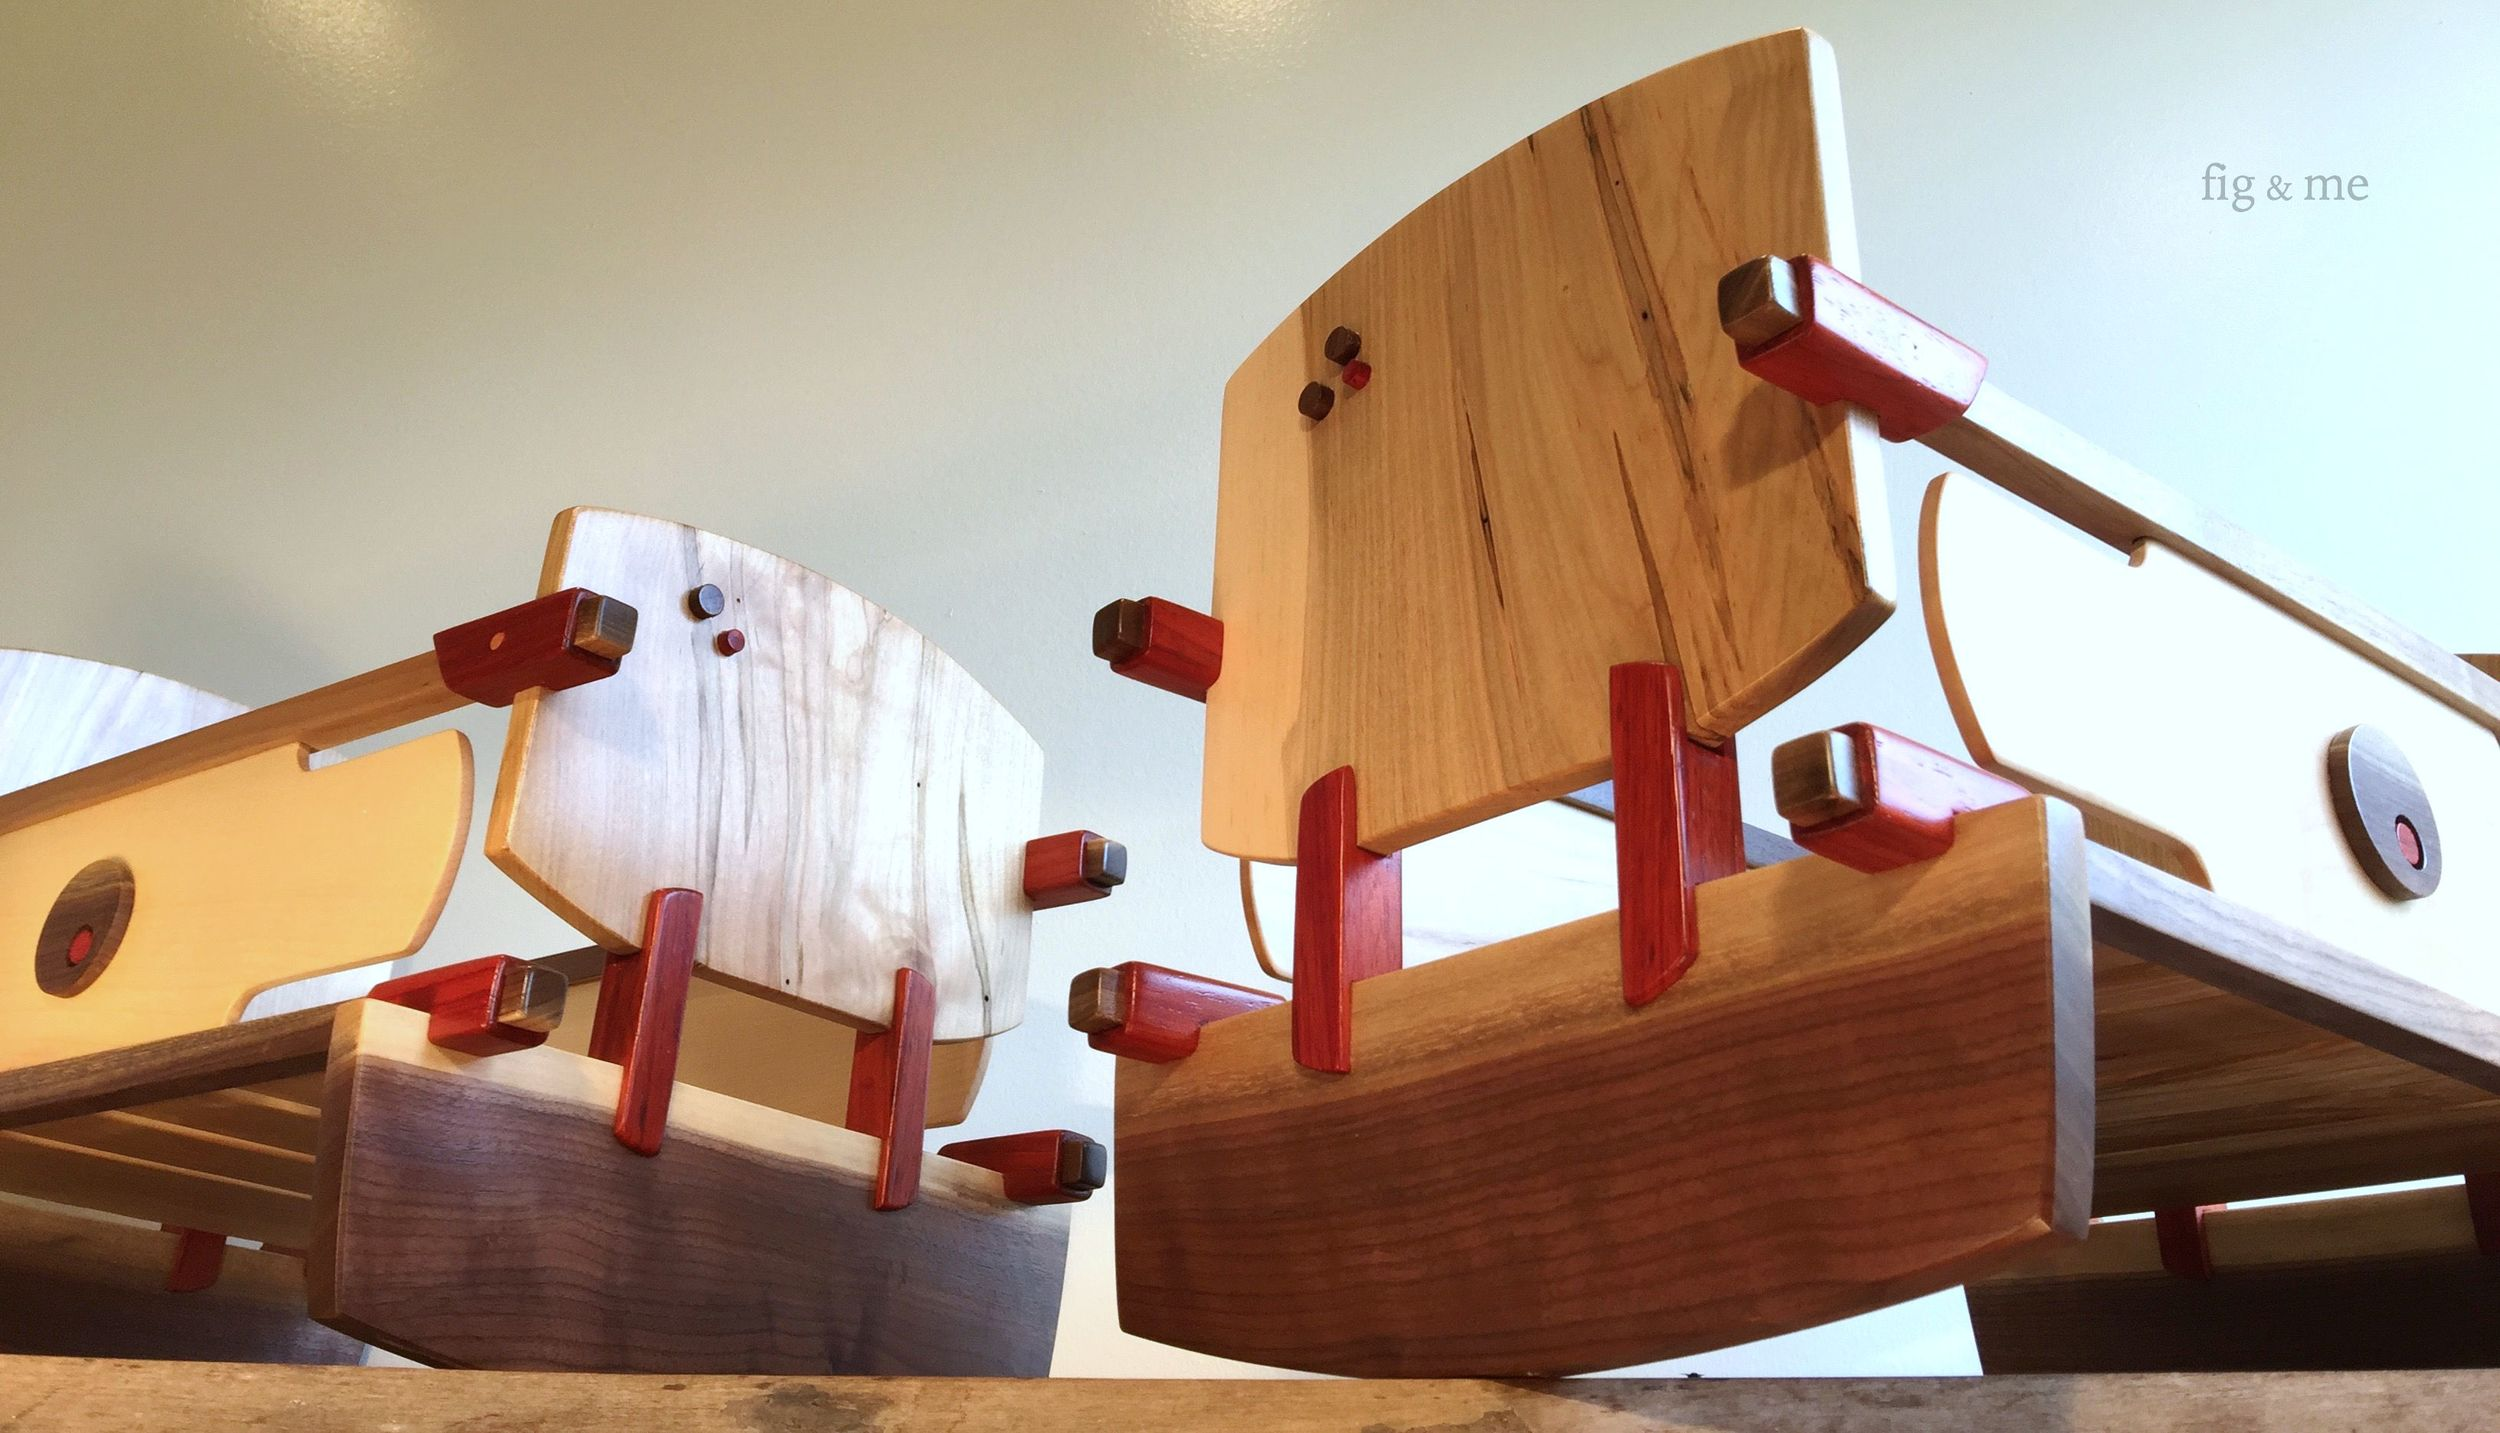 Wooden doll cradles by Fig and me